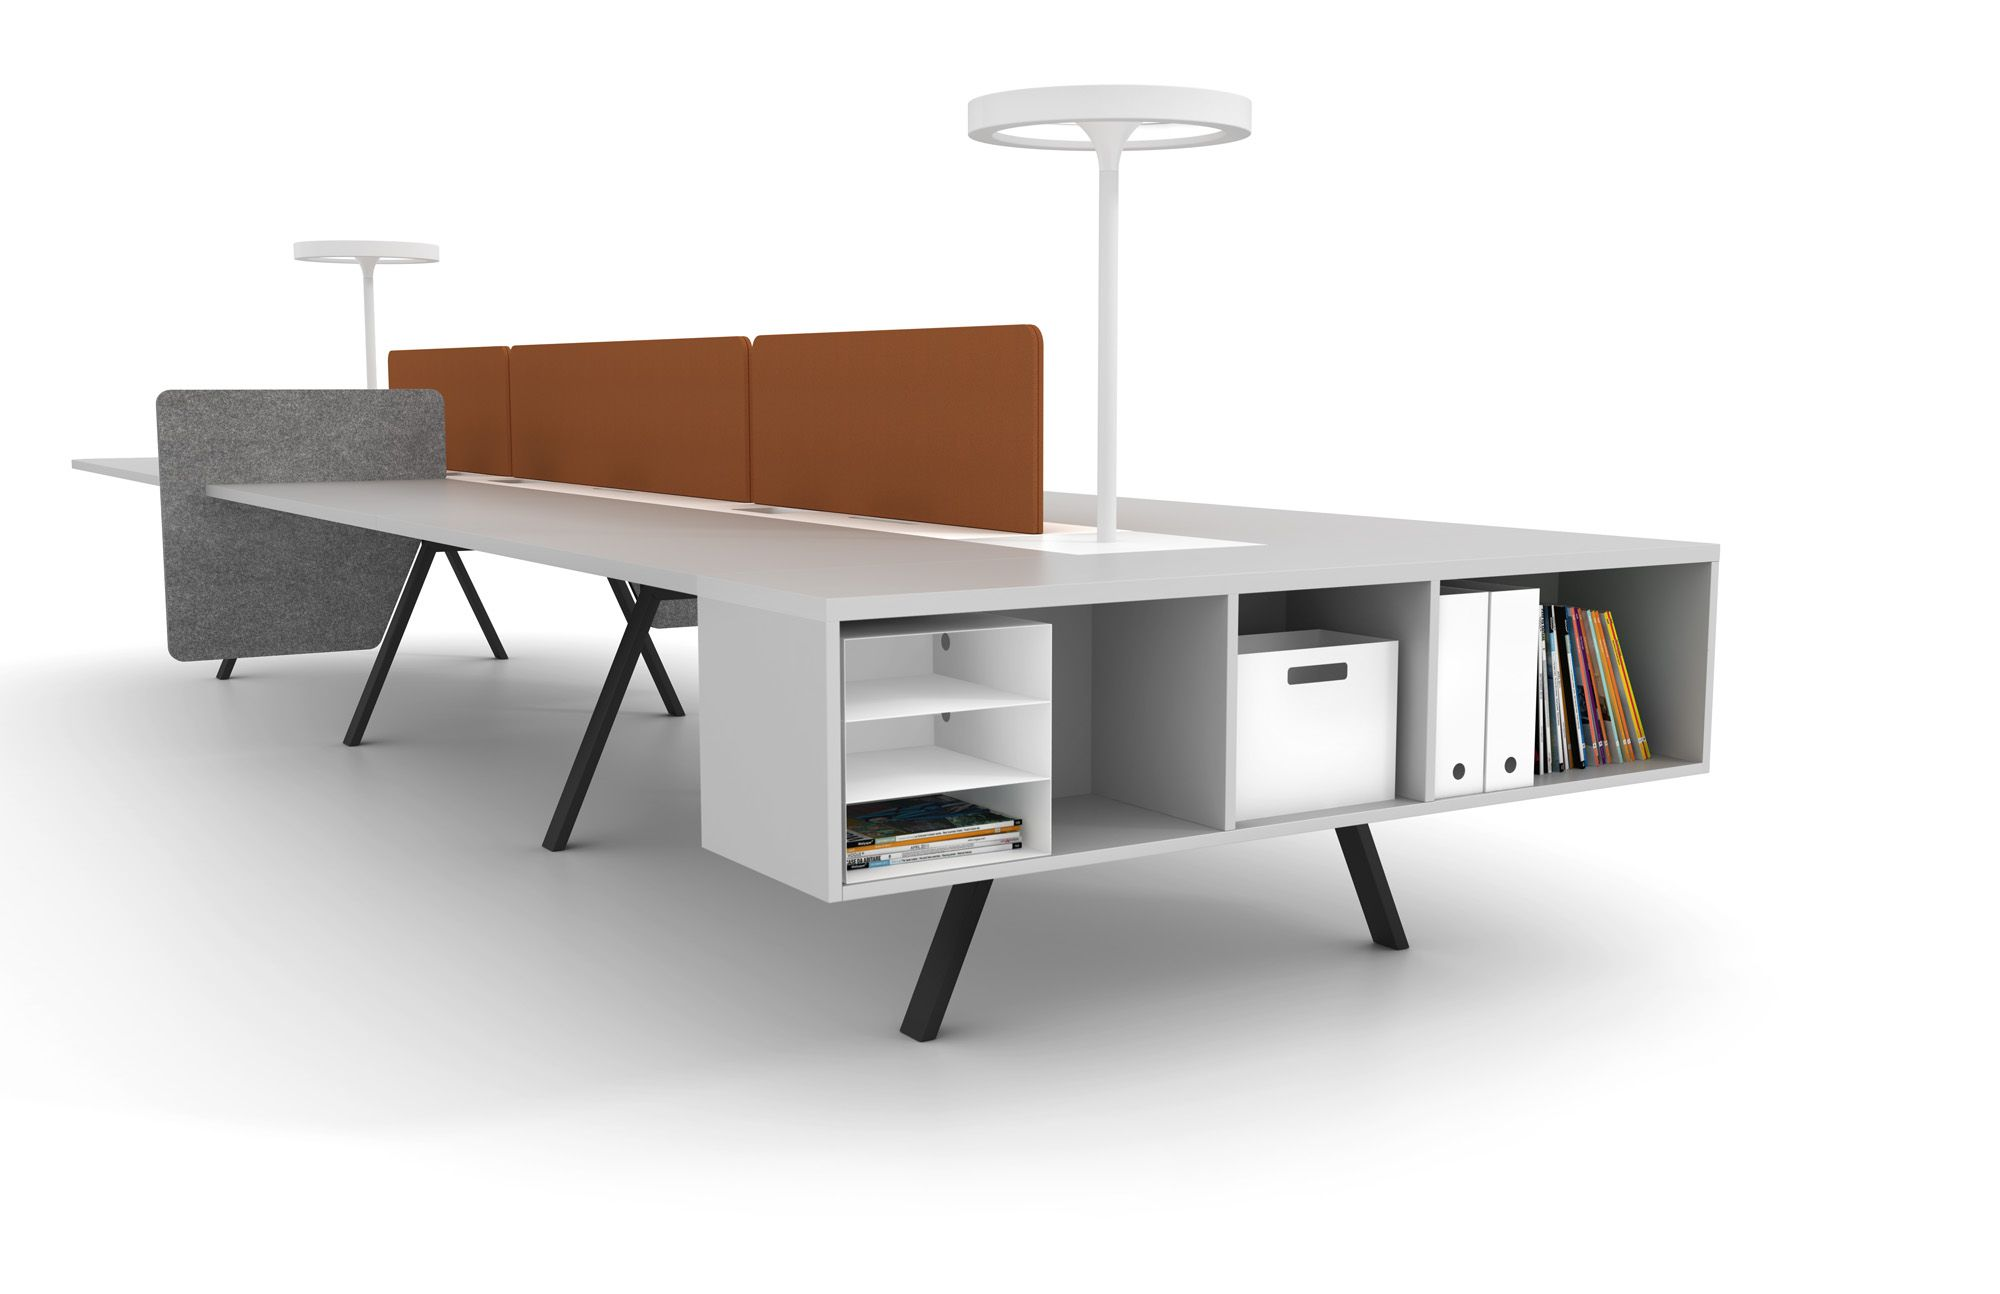 With The Advent Of Snow Space Furniture Systems Pvt Ltd In Office Furnishings Segment Search For A Turnkey Supplier Modular